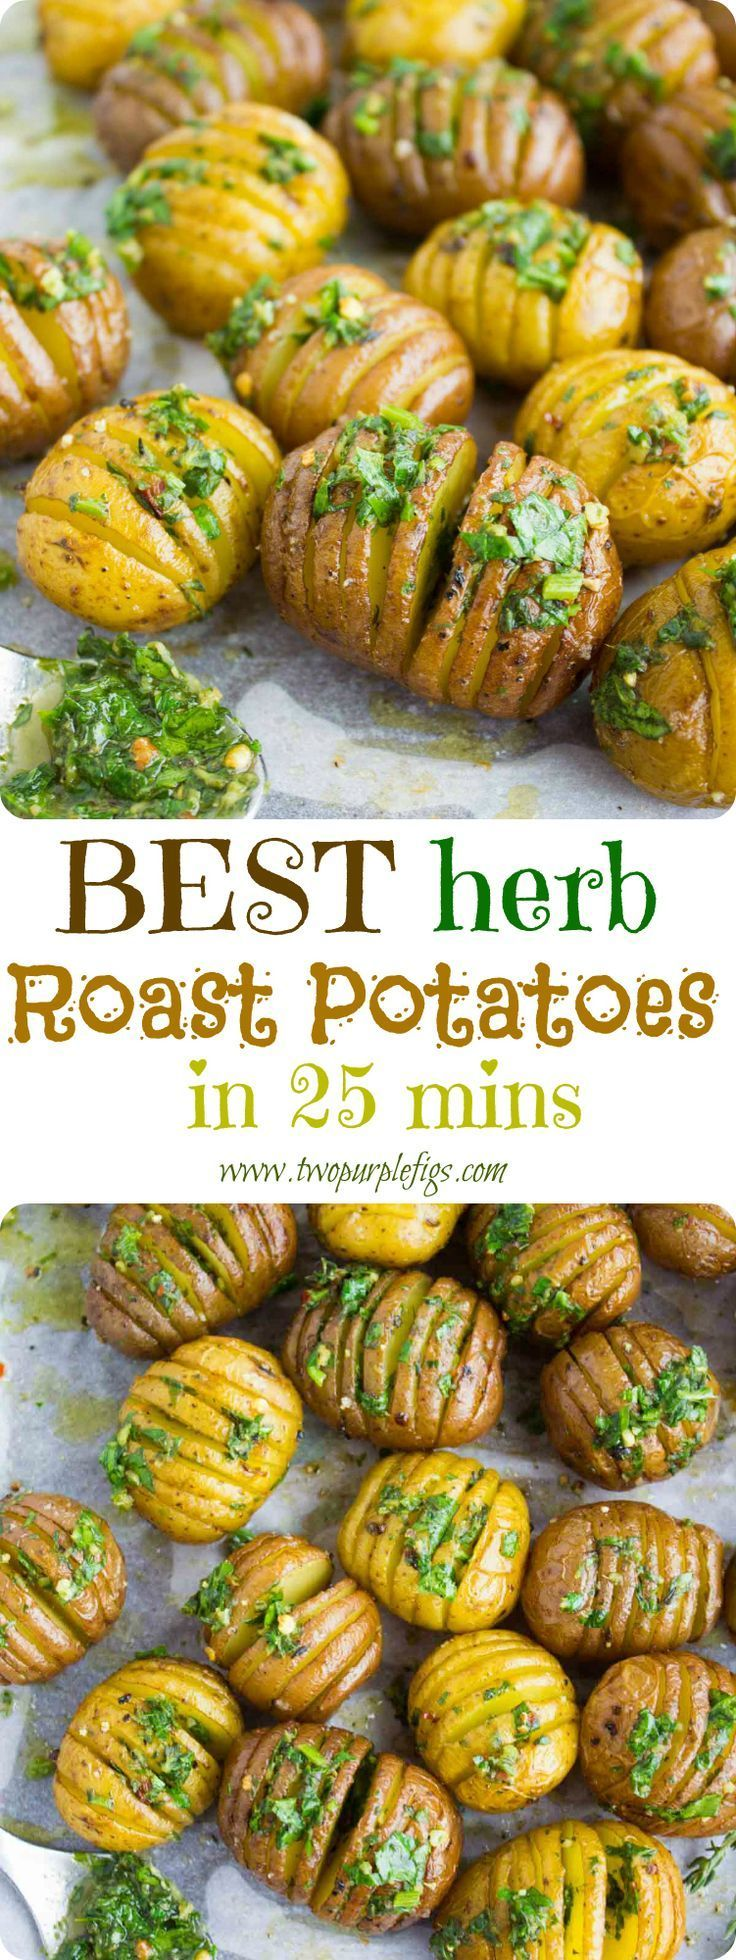 Best Herb Roast Potatoes--The ABSOLUTE best roast potatoes recipe you will ever have! Brushed with sweet herb butter or olive oil (if vegan)--crispy on the outside and tender on the inside--pure potato LOVE!